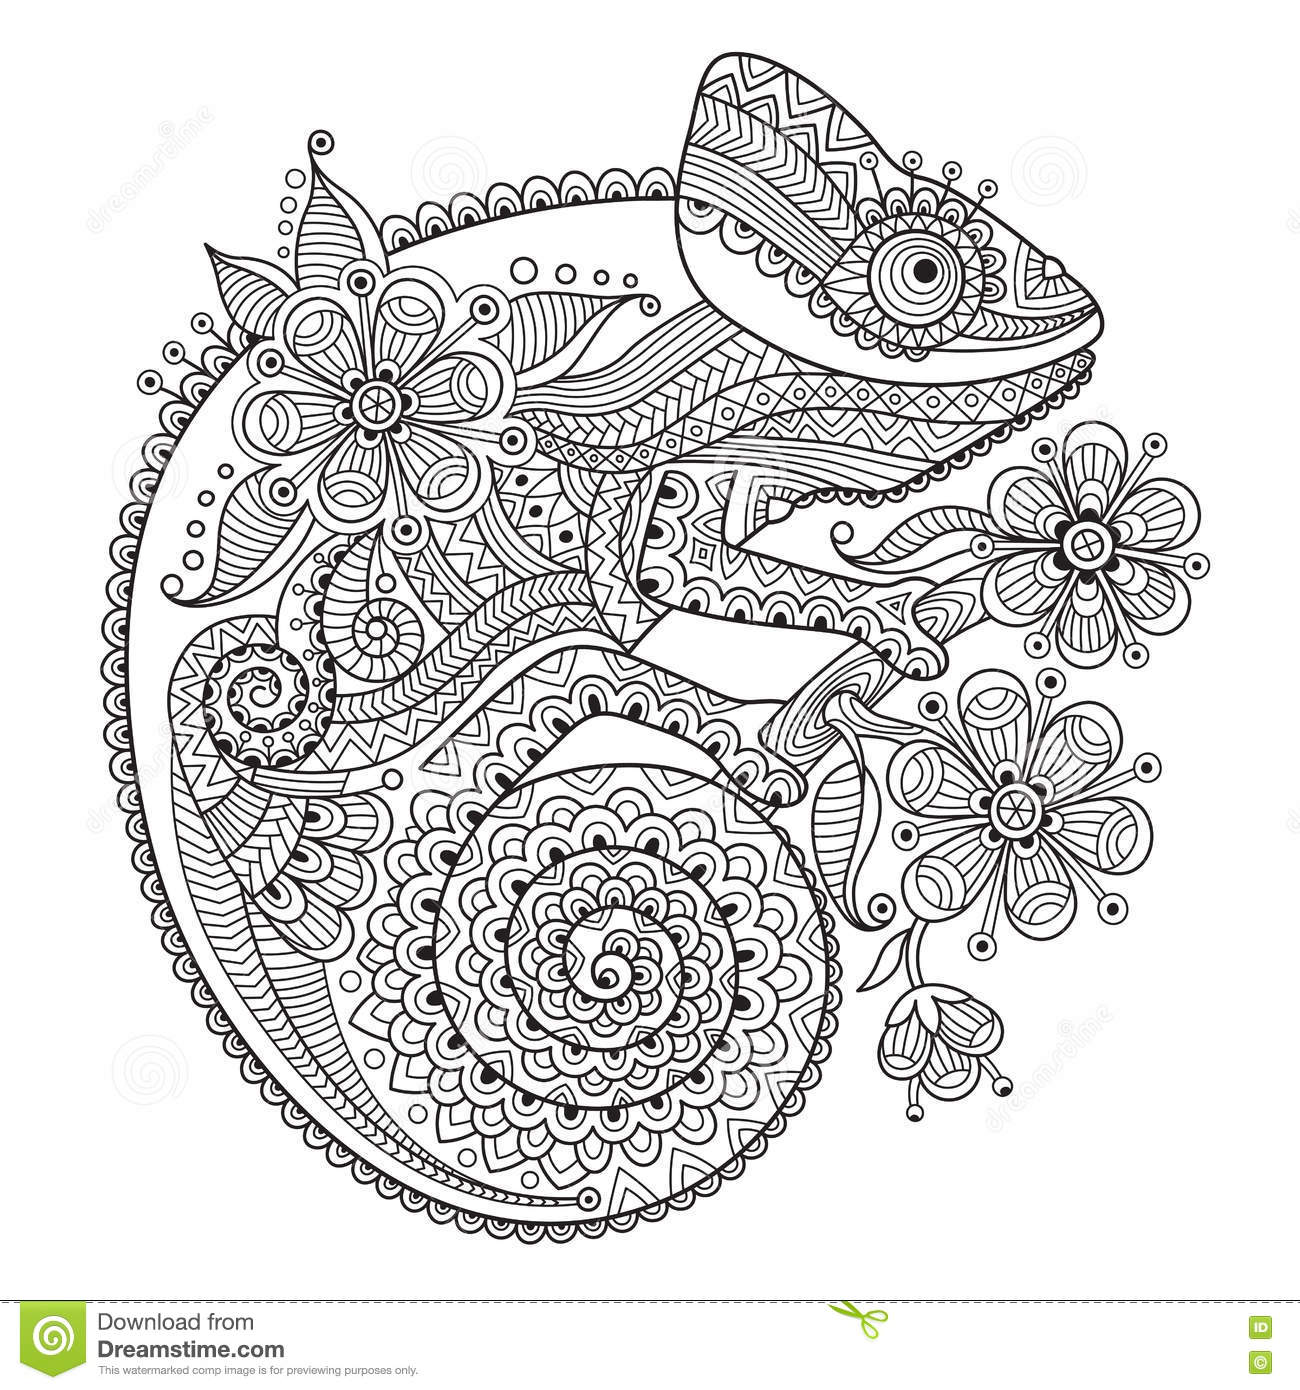 Black And White Vector Illustration With A Chameleon In